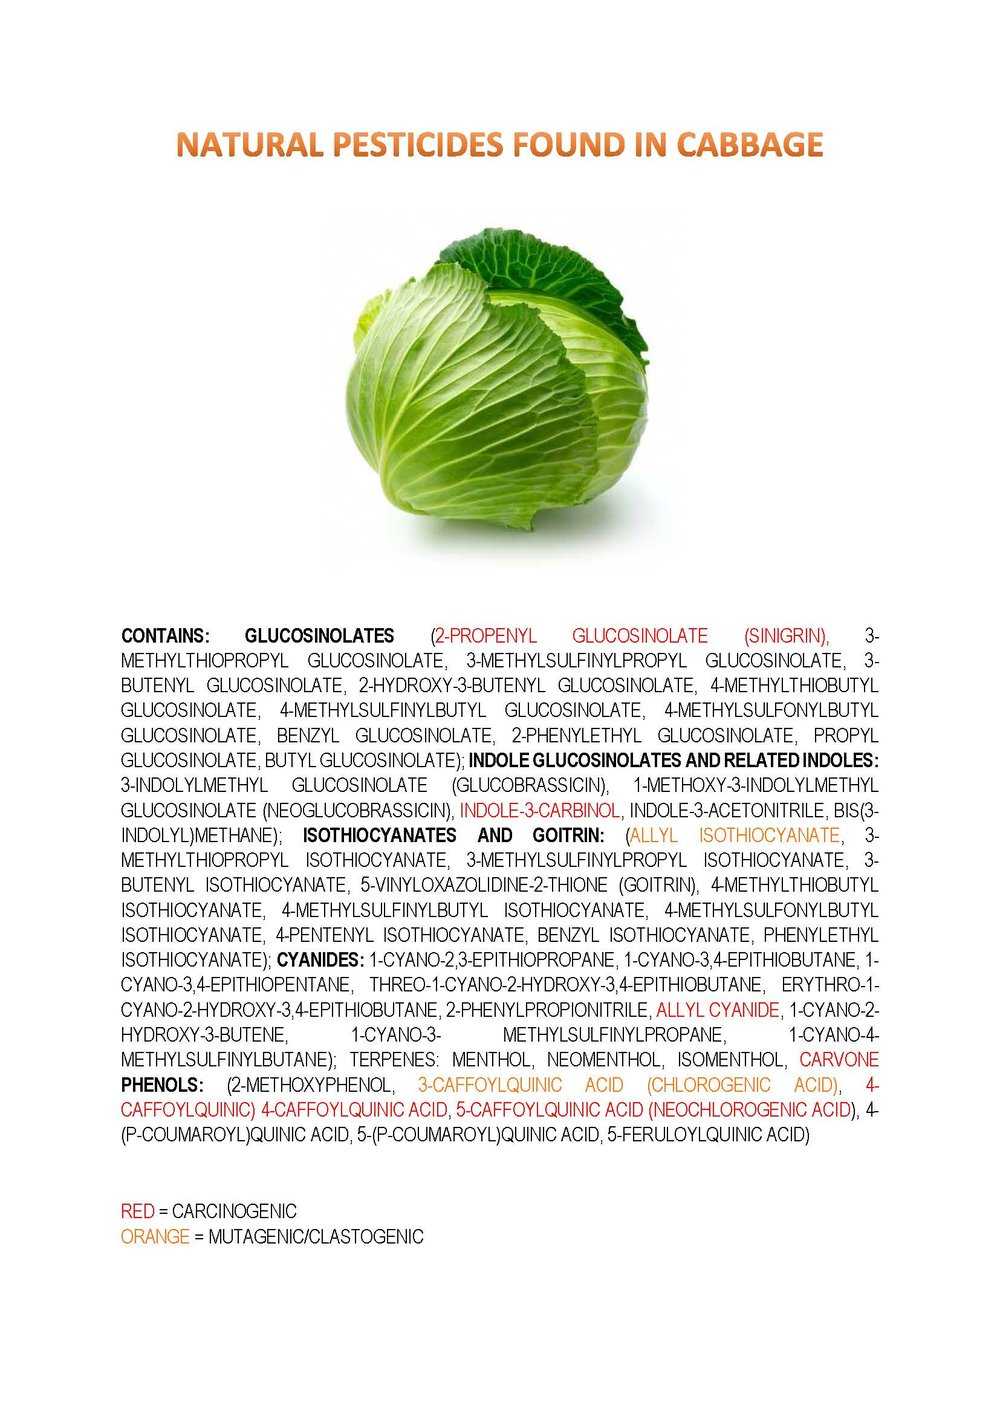 Chemicals Found in Natural Cabbage